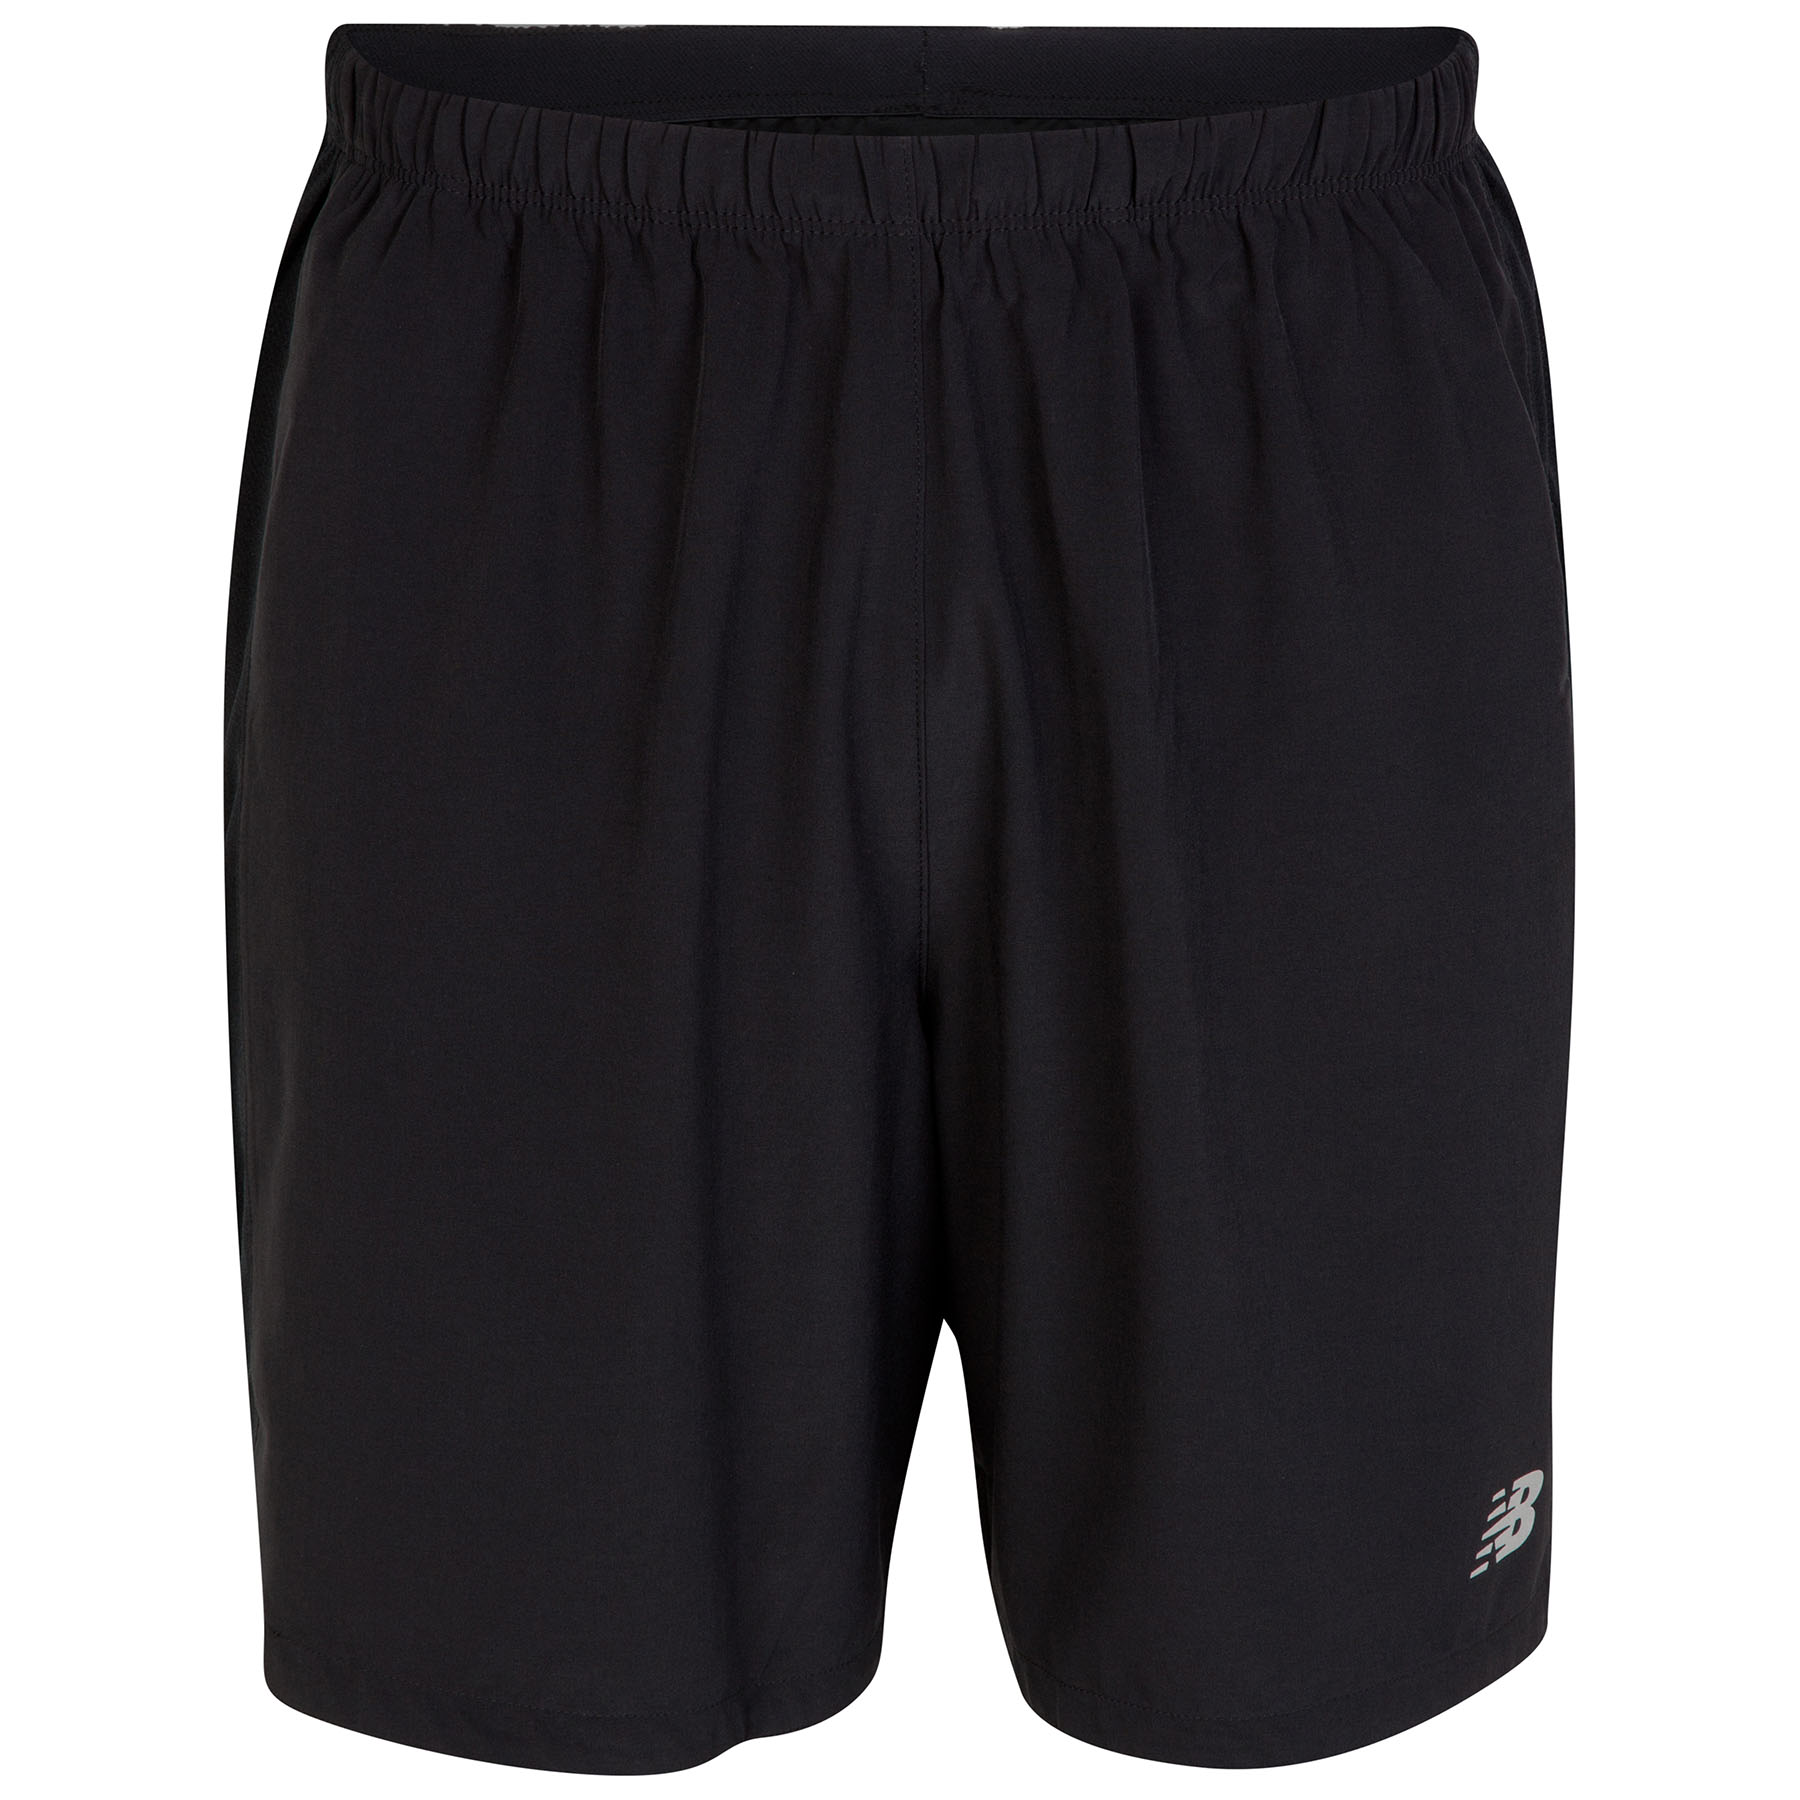 New Balance Impact 7In 2-In-1 Shorts Black